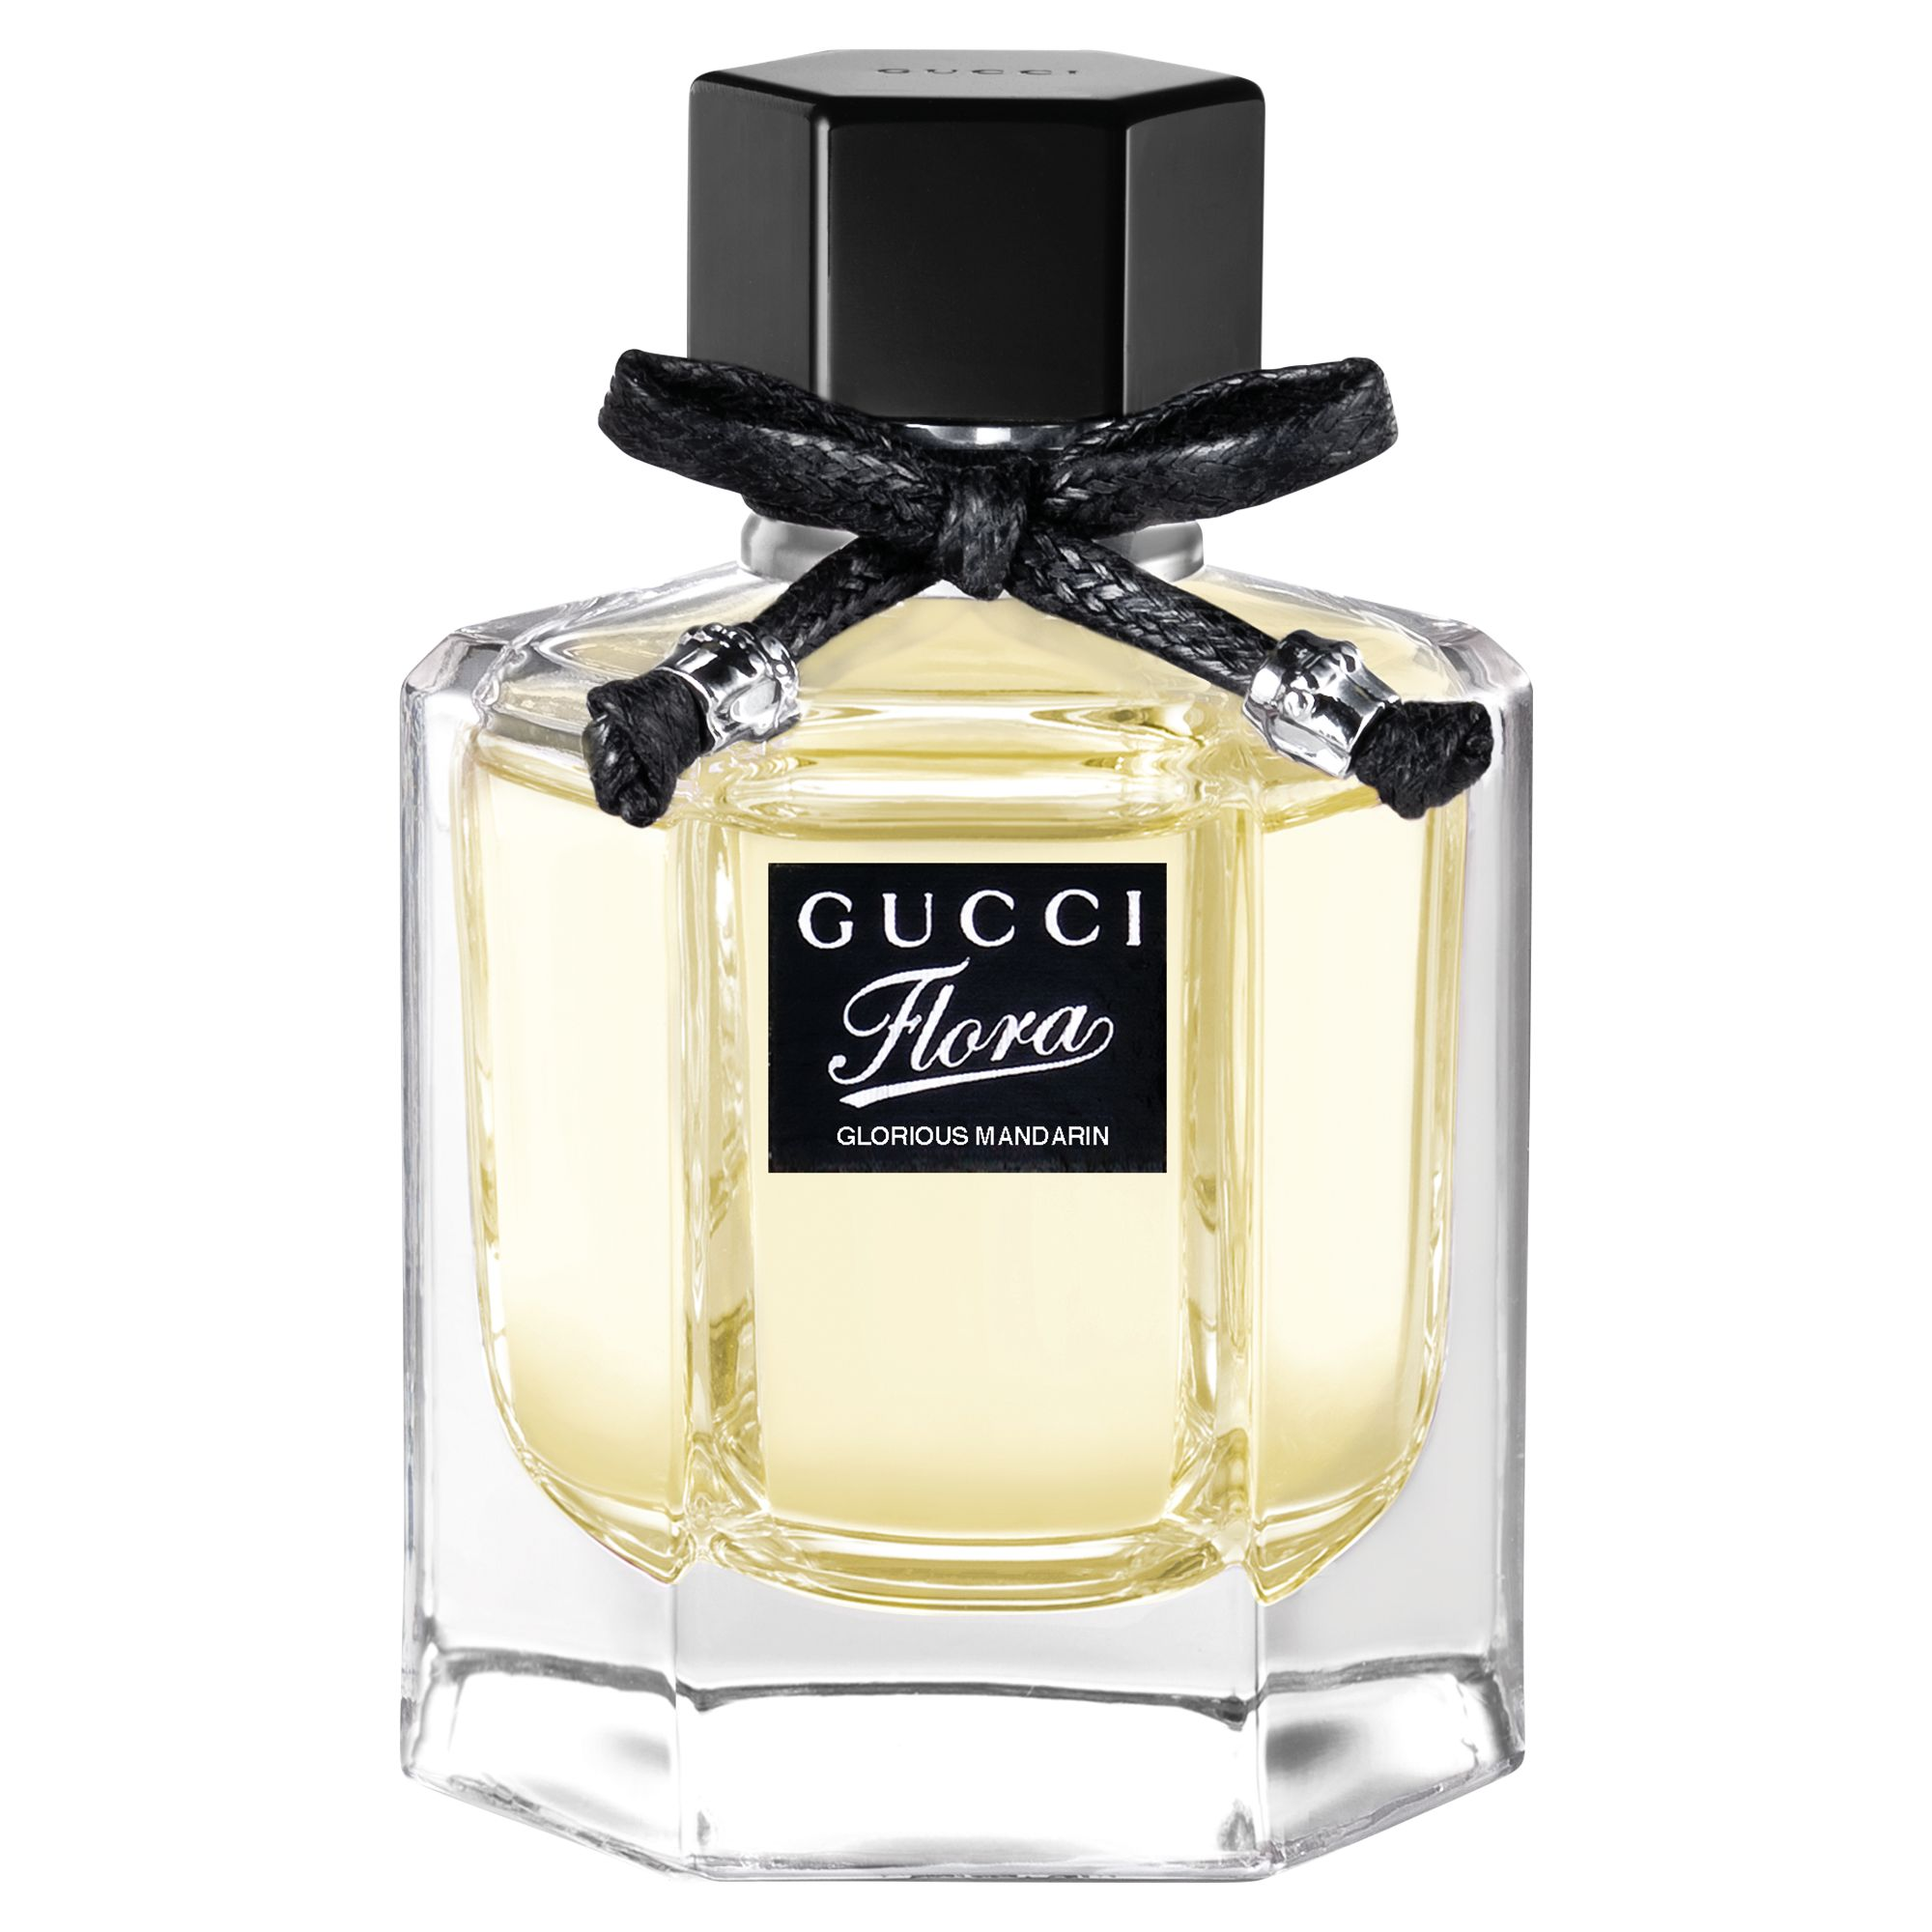 c02e77681 Gucci Flora Glorious Mandarin Eau de Toilette For Her, 50ml at John Lewis &  Partners